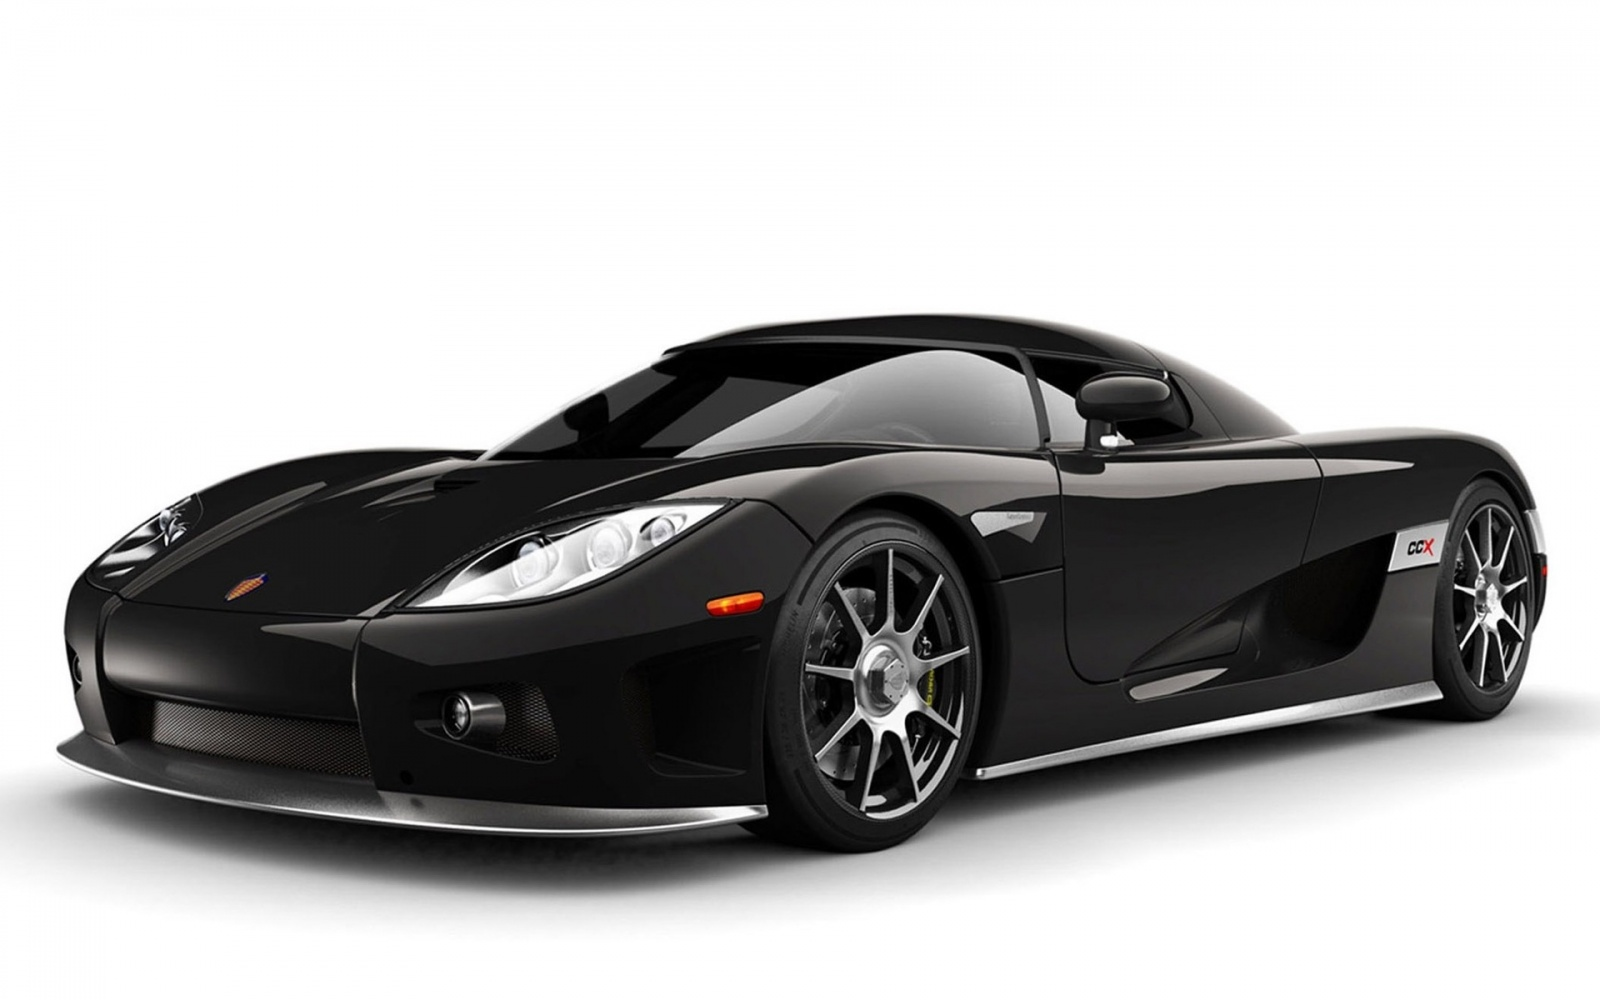 Black Sports Car Wallpaper: Pictures Of Cars Hd